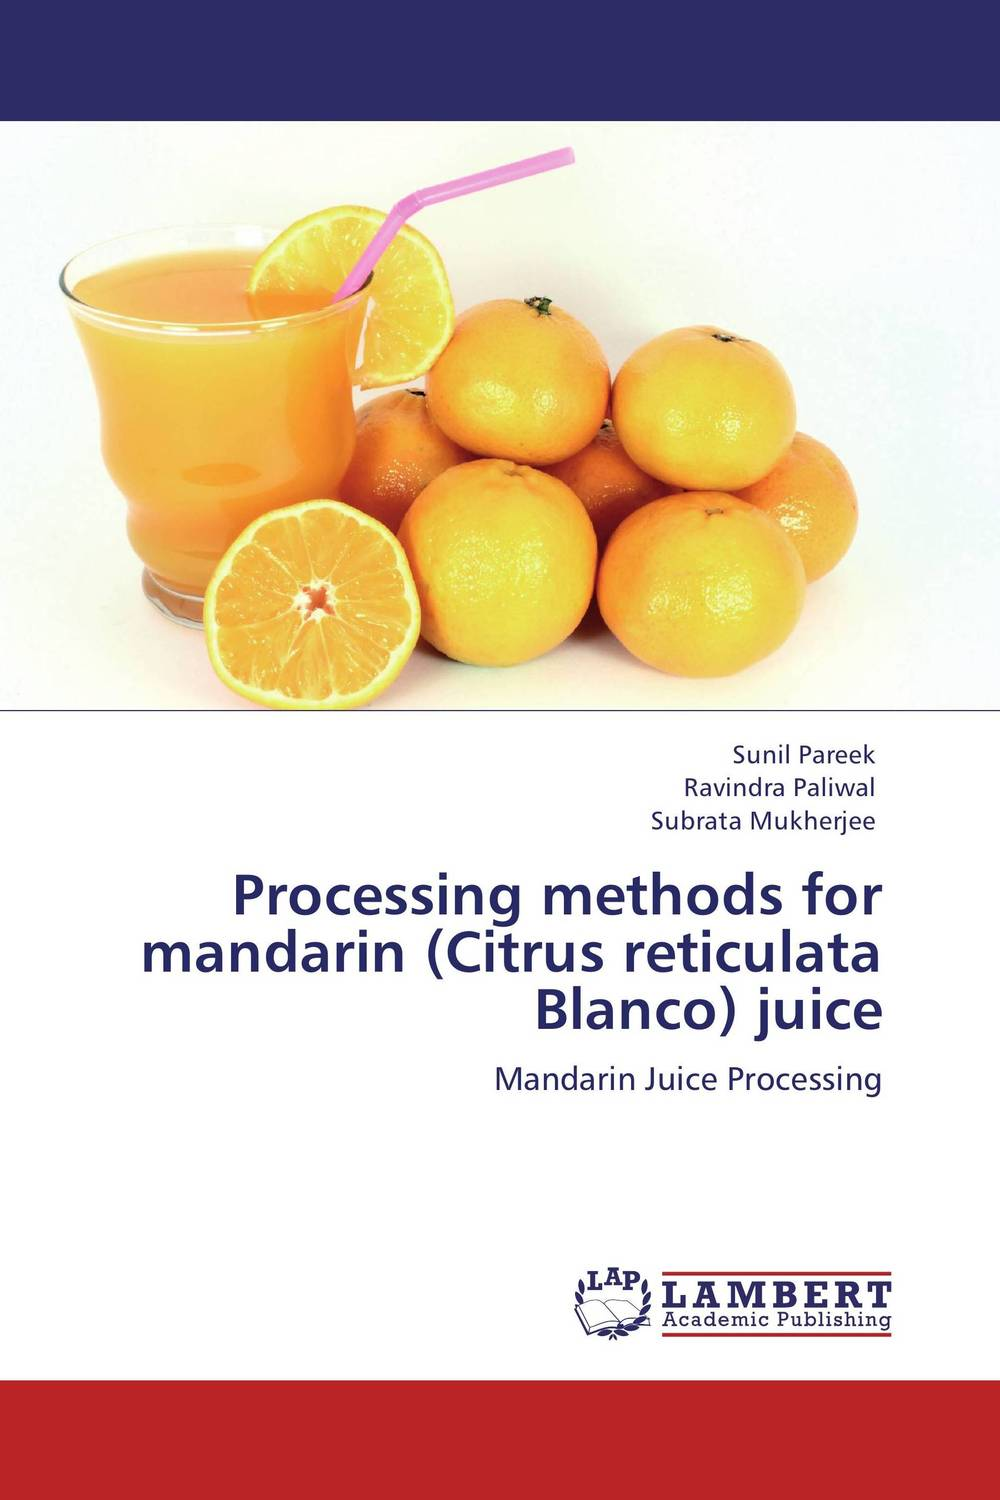 Processing methods for mandarin (Citrus reticulata Blanco) juice mango pulp effect of variety and storage temperature